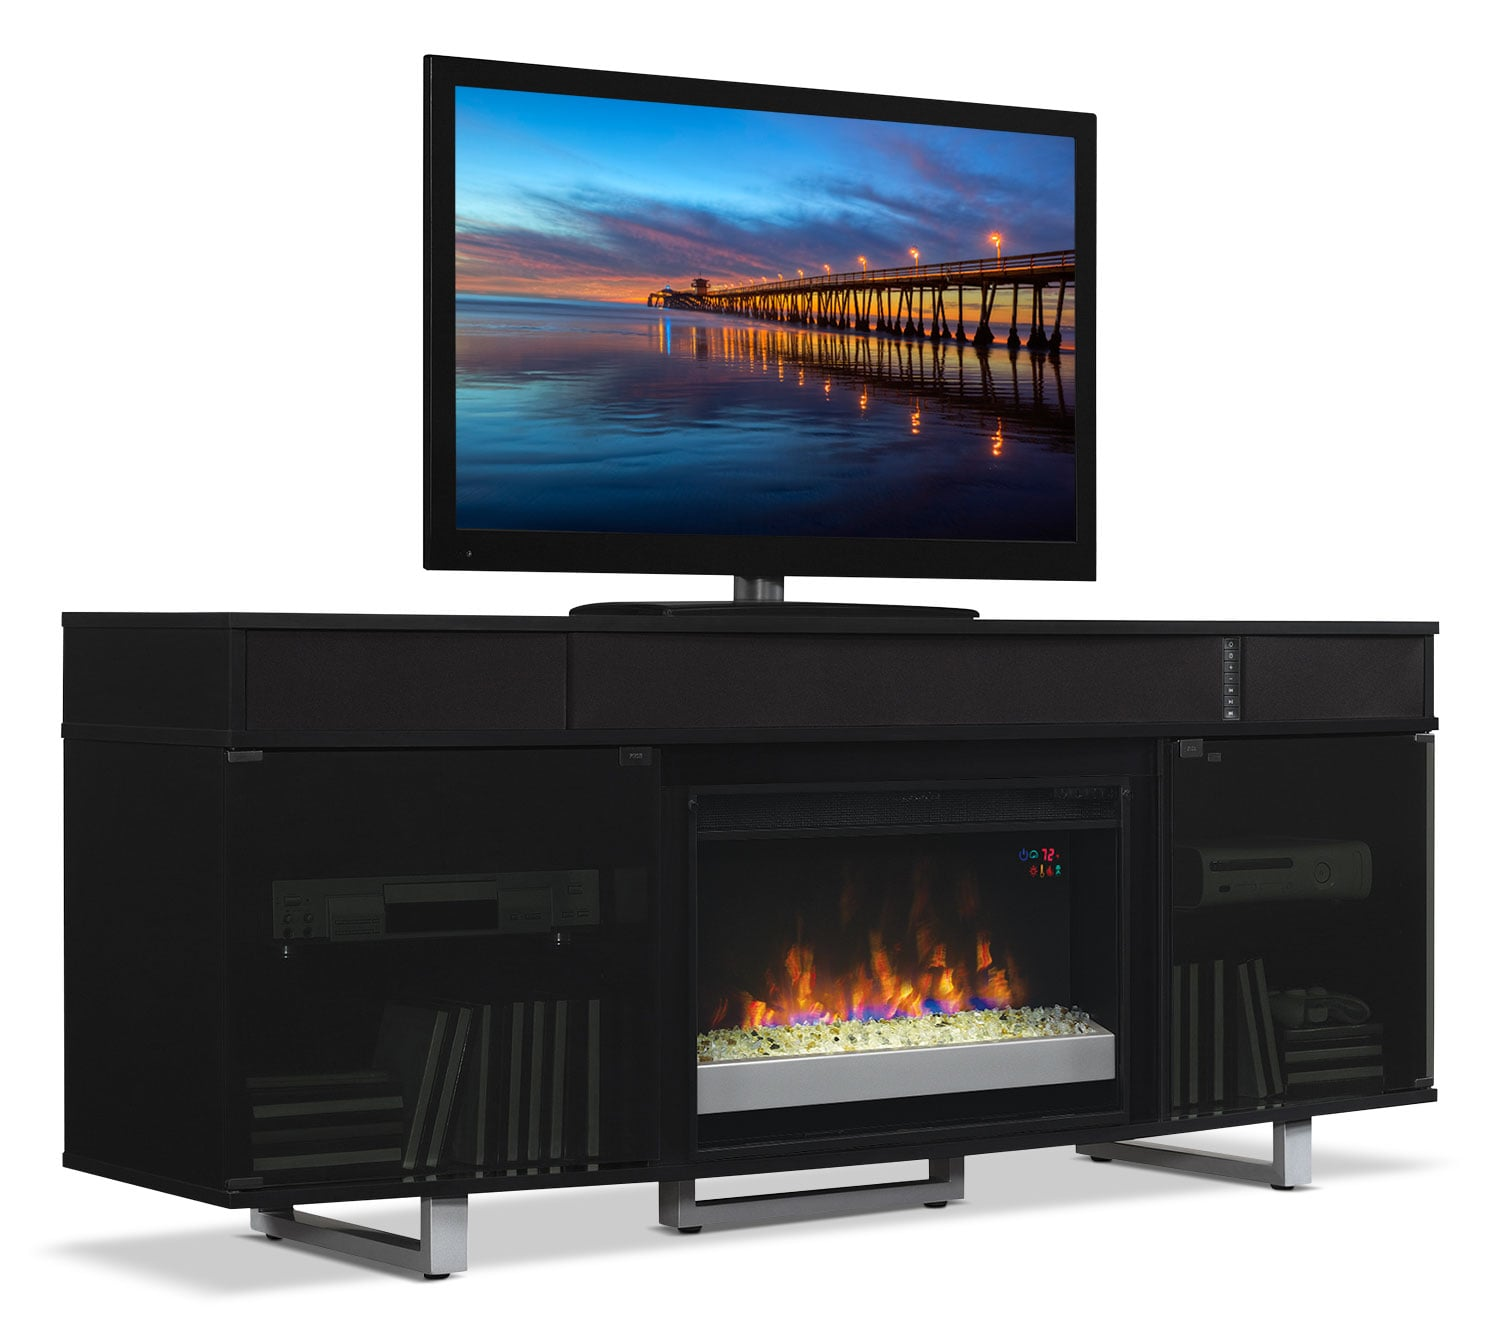 odesos 72 tv stand with glass ember firebox and soundbar black the brick. Black Bedroom Furniture Sets. Home Design Ideas